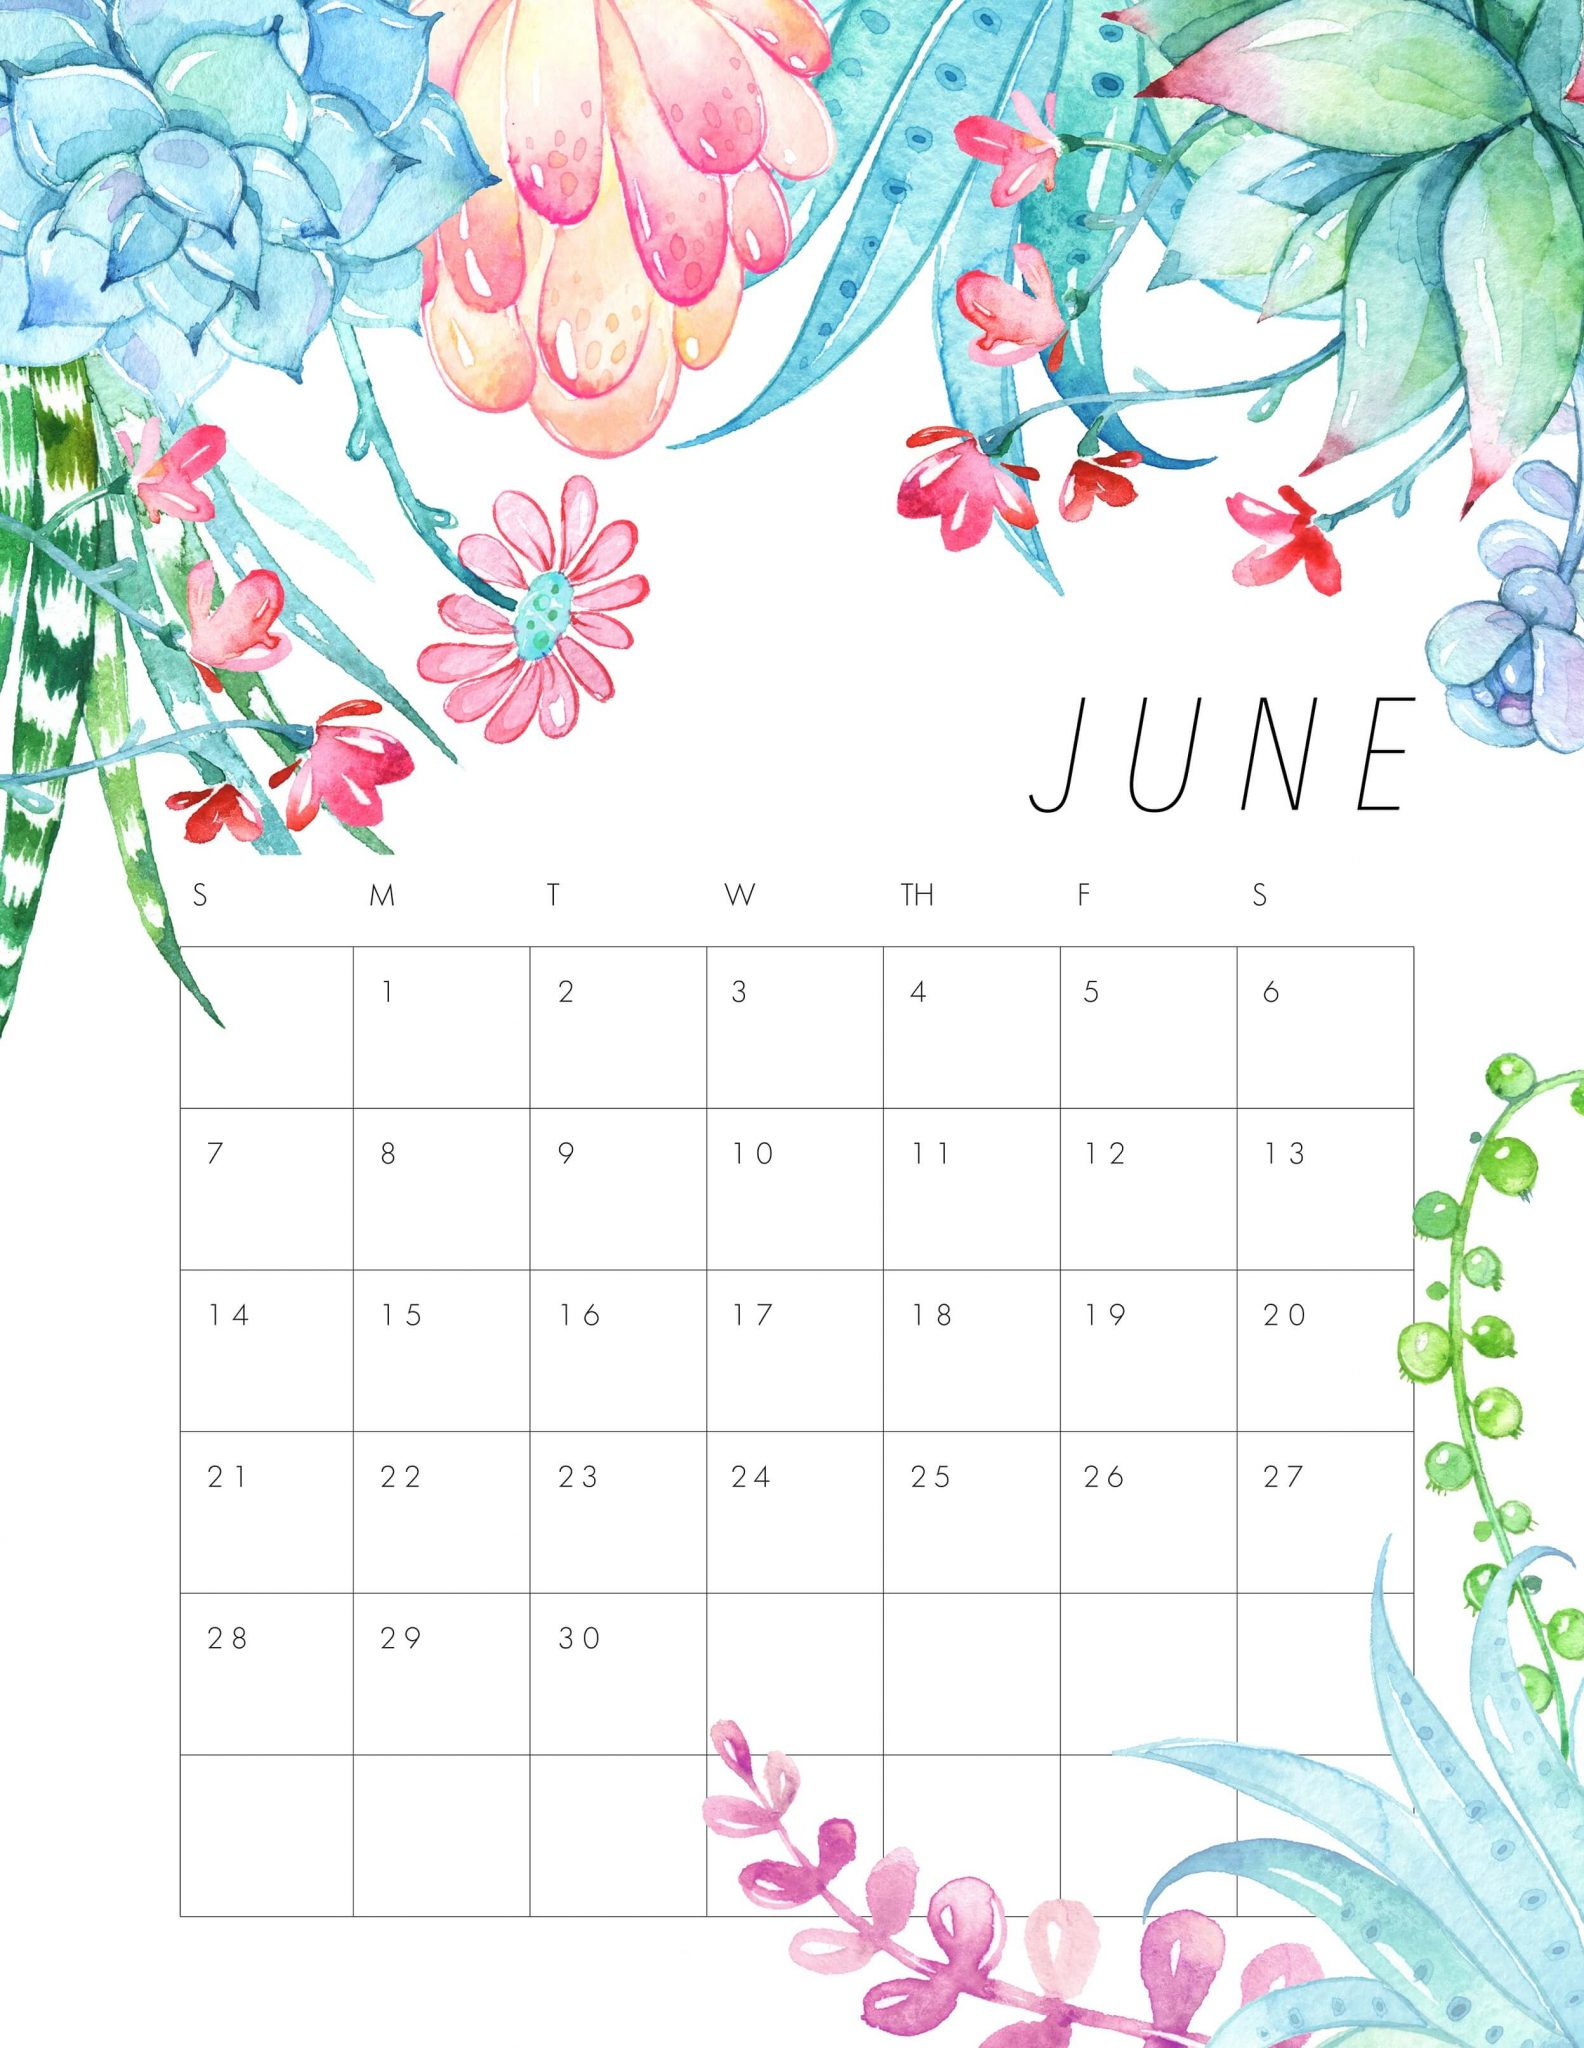 Cute June 2020 Desk Calendar